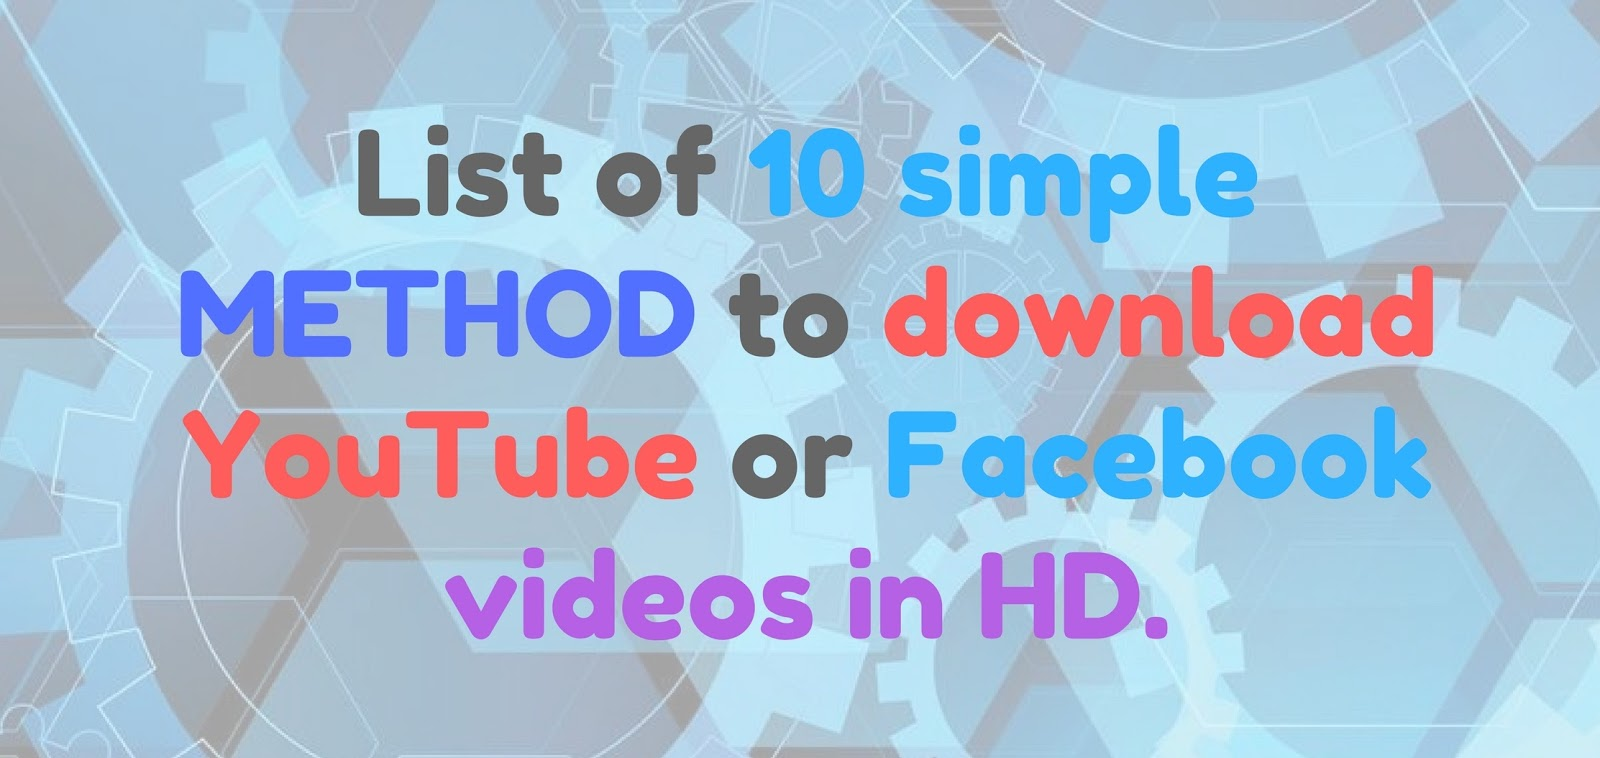 How to download youtube and facebook videos free in hd quality many users dont know how to download or save their favorite video in their computer so that they can watch videos without connected to internet ccuart Choice Image